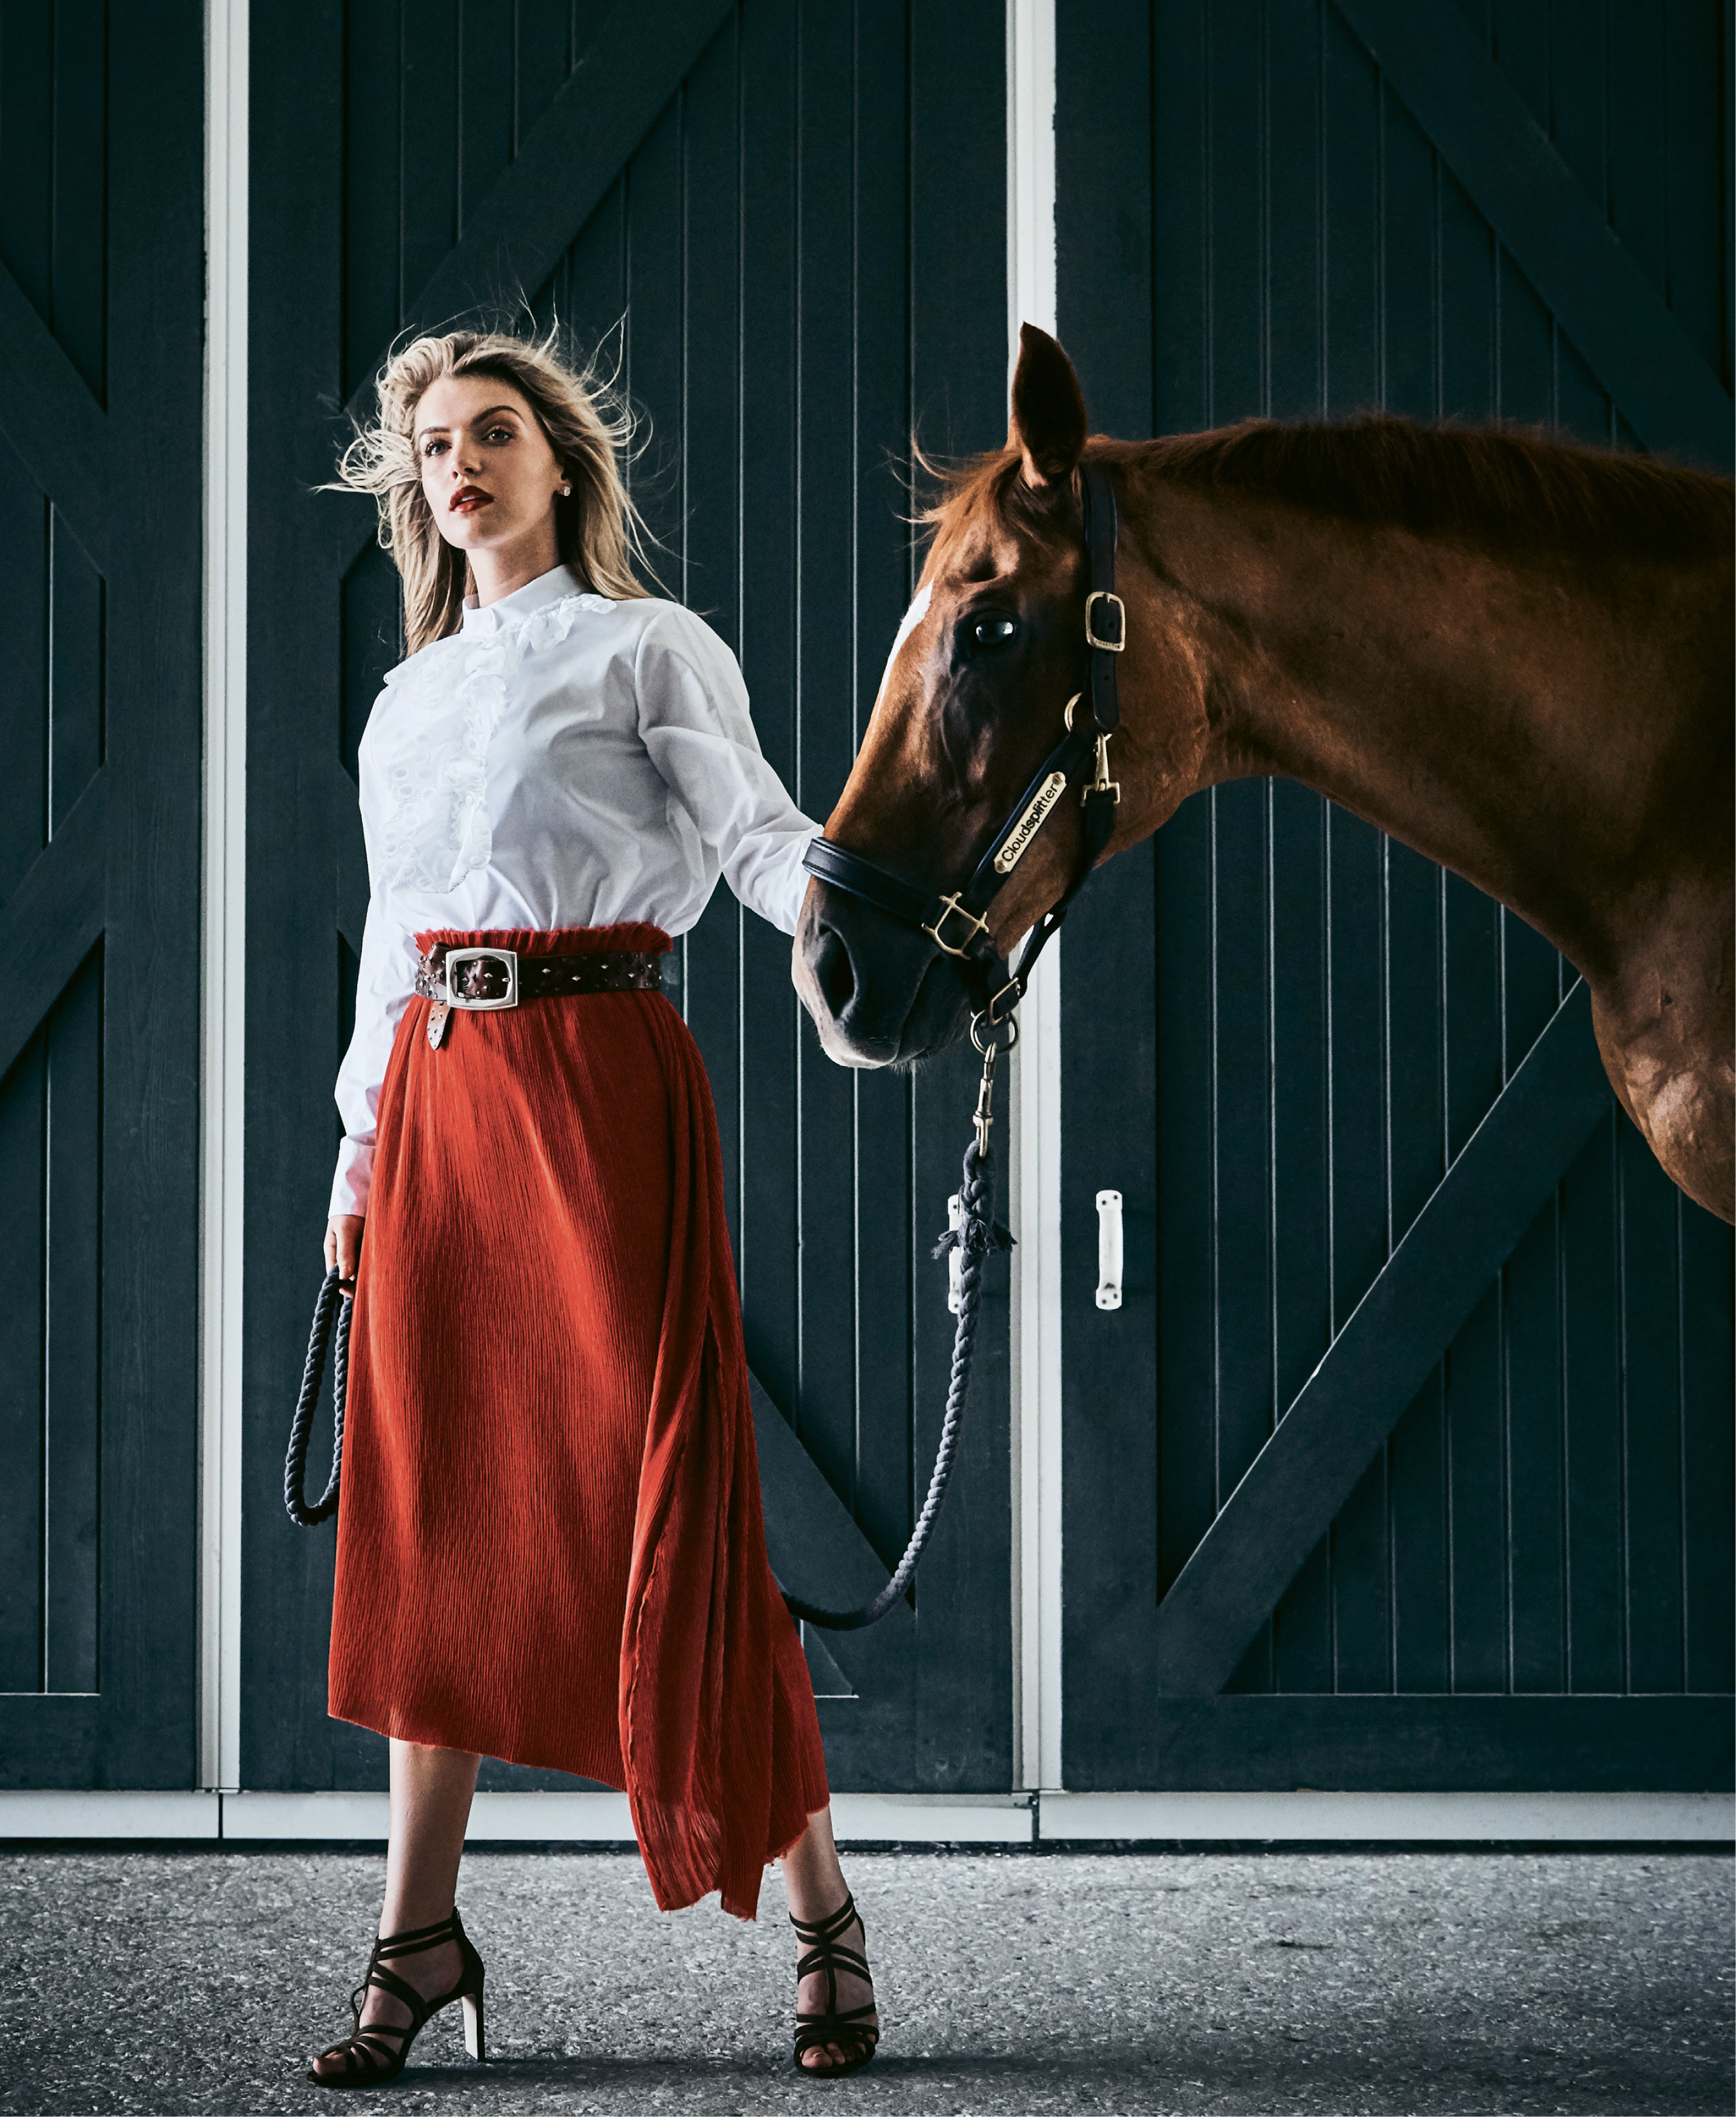 """Taking the Lead - Chloé embroidered poplin blouse, price upon request at RTW; Verandah silk-blend midi skirt, $228 at Maris DeHart; Suzi Roher leather belt, $462, and Jimmy Choo """"Selina"""" suede sandal, $850, both at Gwynn's of Mount Pleasant; Spartina 449 """"Night & Day"""" crystal earrings, $24 at Woodhouse Day Spa.  Pictured with Cloudsplitter (owned by Shelby de Freitas)"""